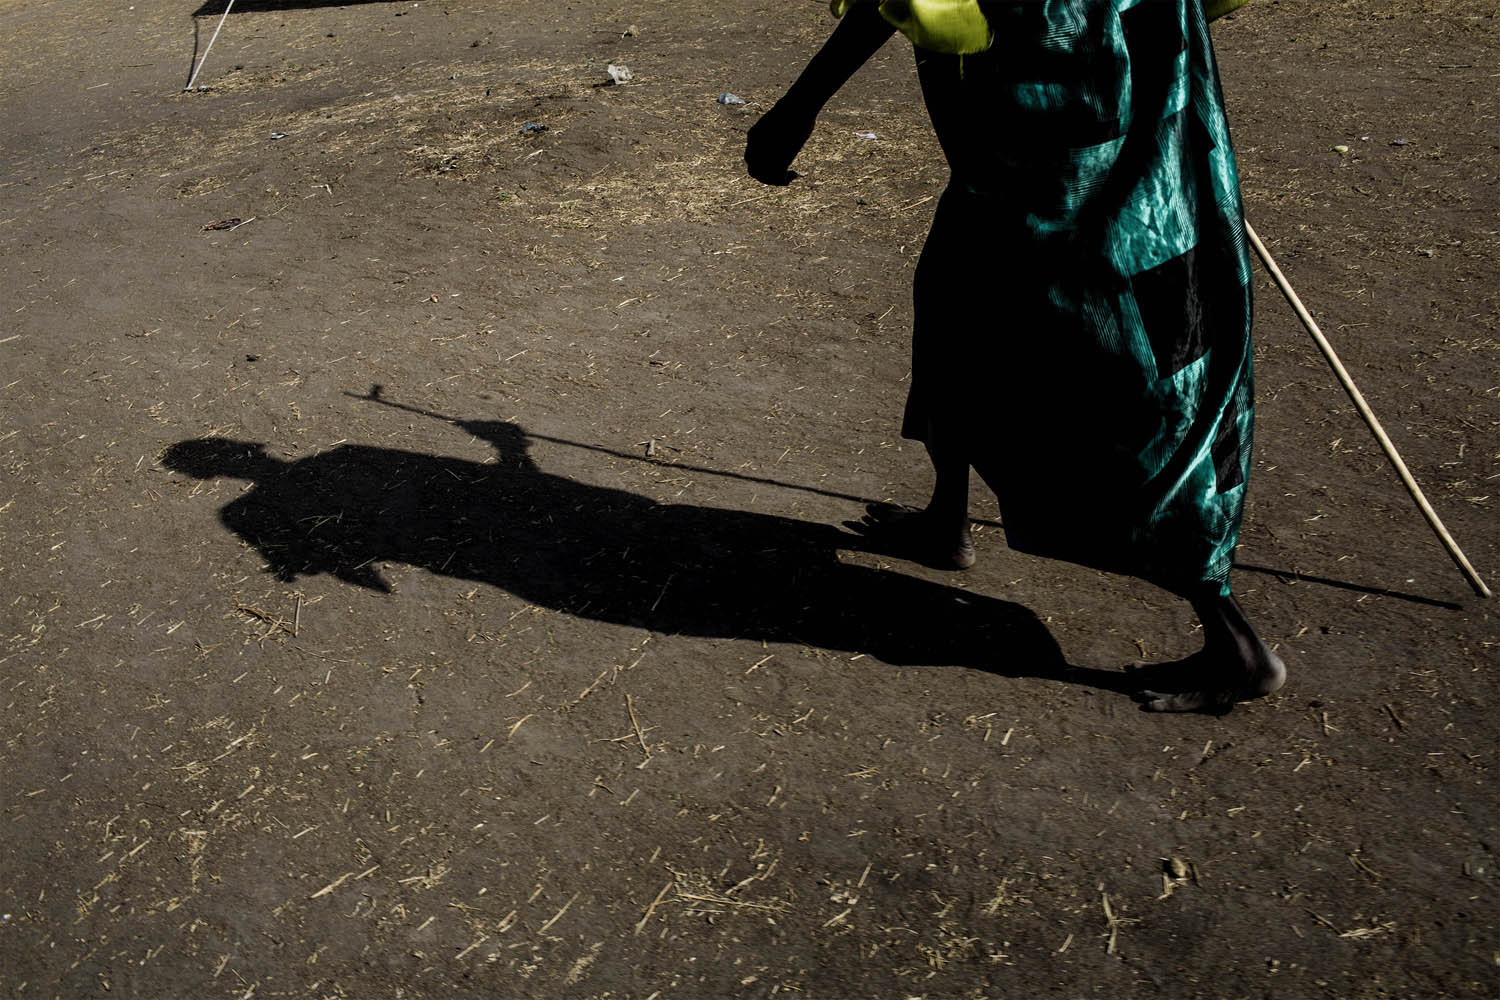 Feb. 7, 2014. A person walks in the temporary camp of South Sudanese Internally Displaced People (IDP's) in Mingkaman, South Sudan.